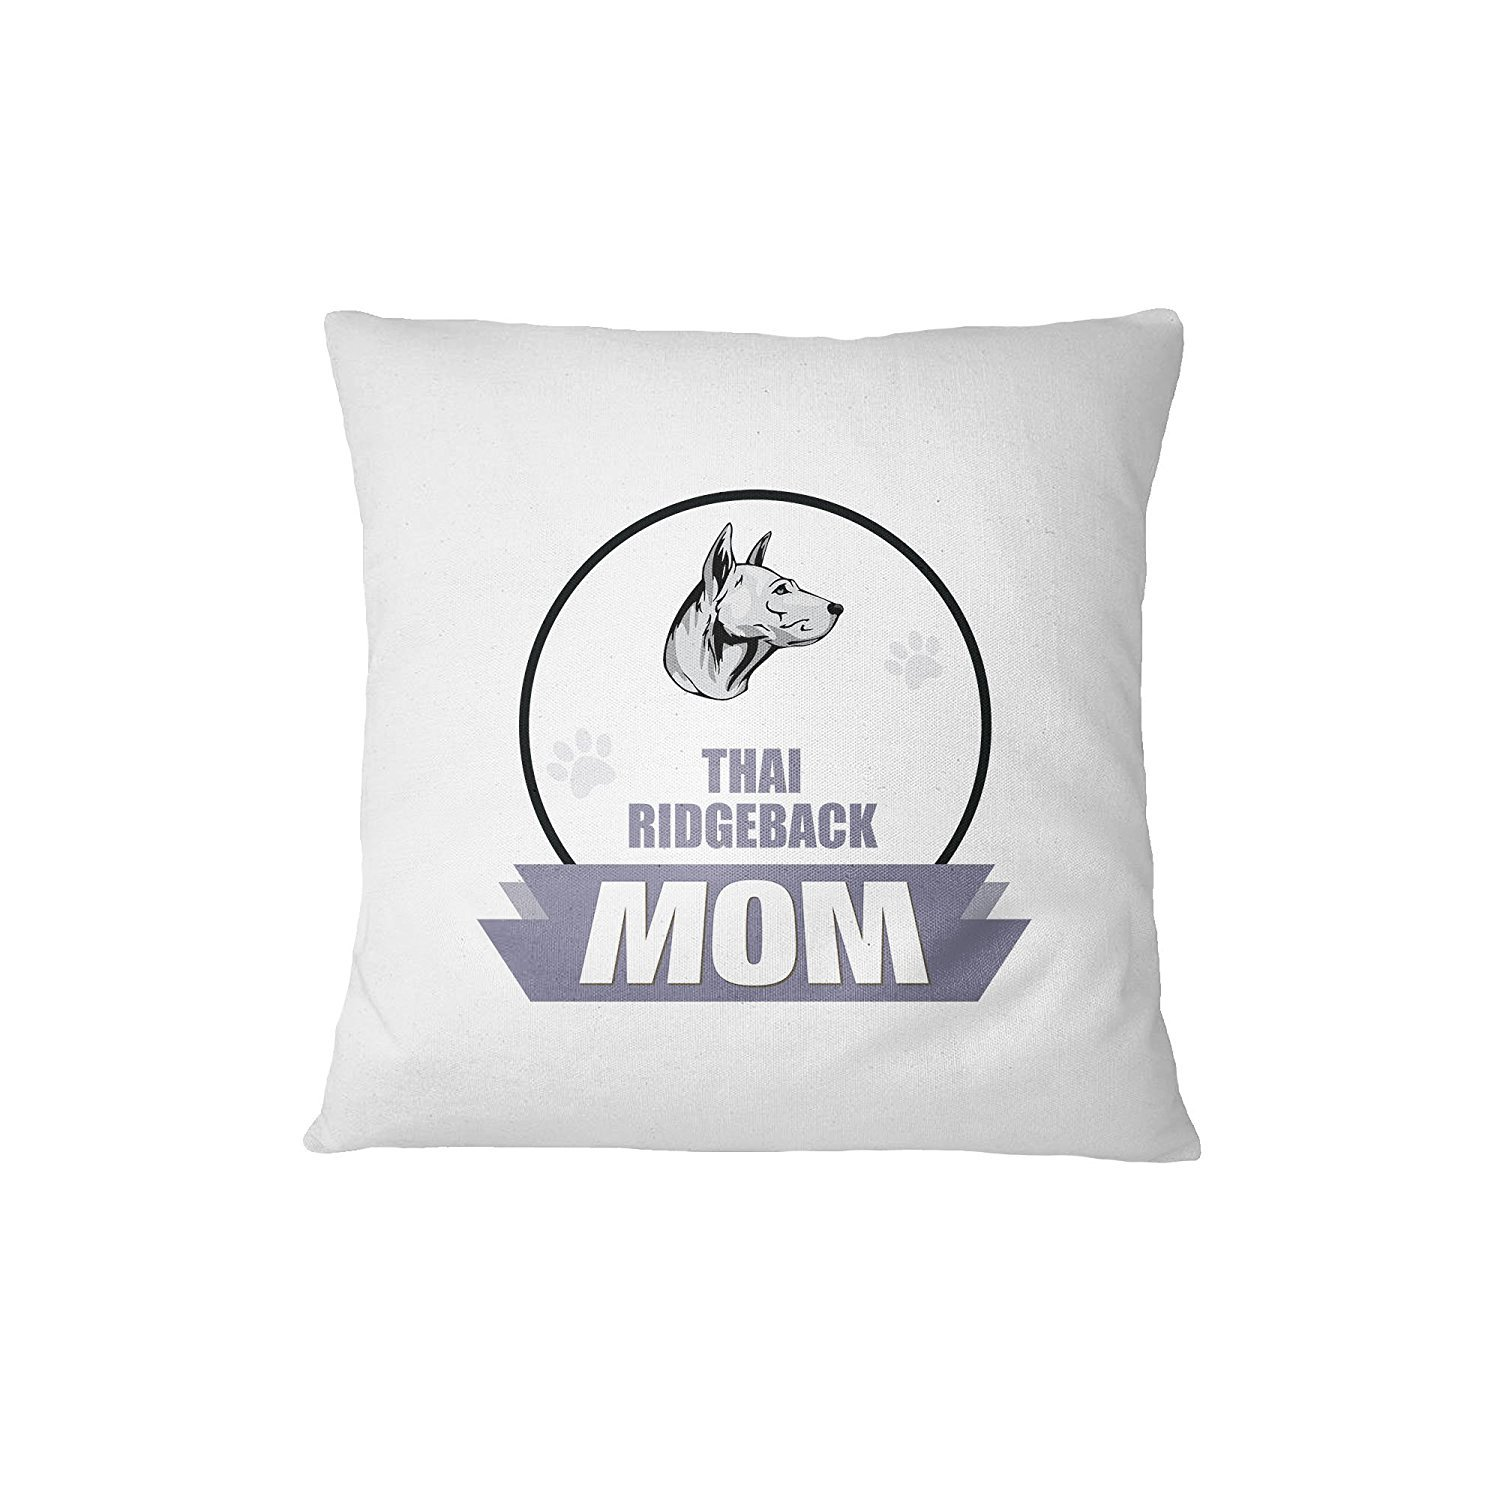 THAI RIDGEBACK DOG MOM Sofa Bed Home Decor Pillow Cover Cover Only RENJUNDUN